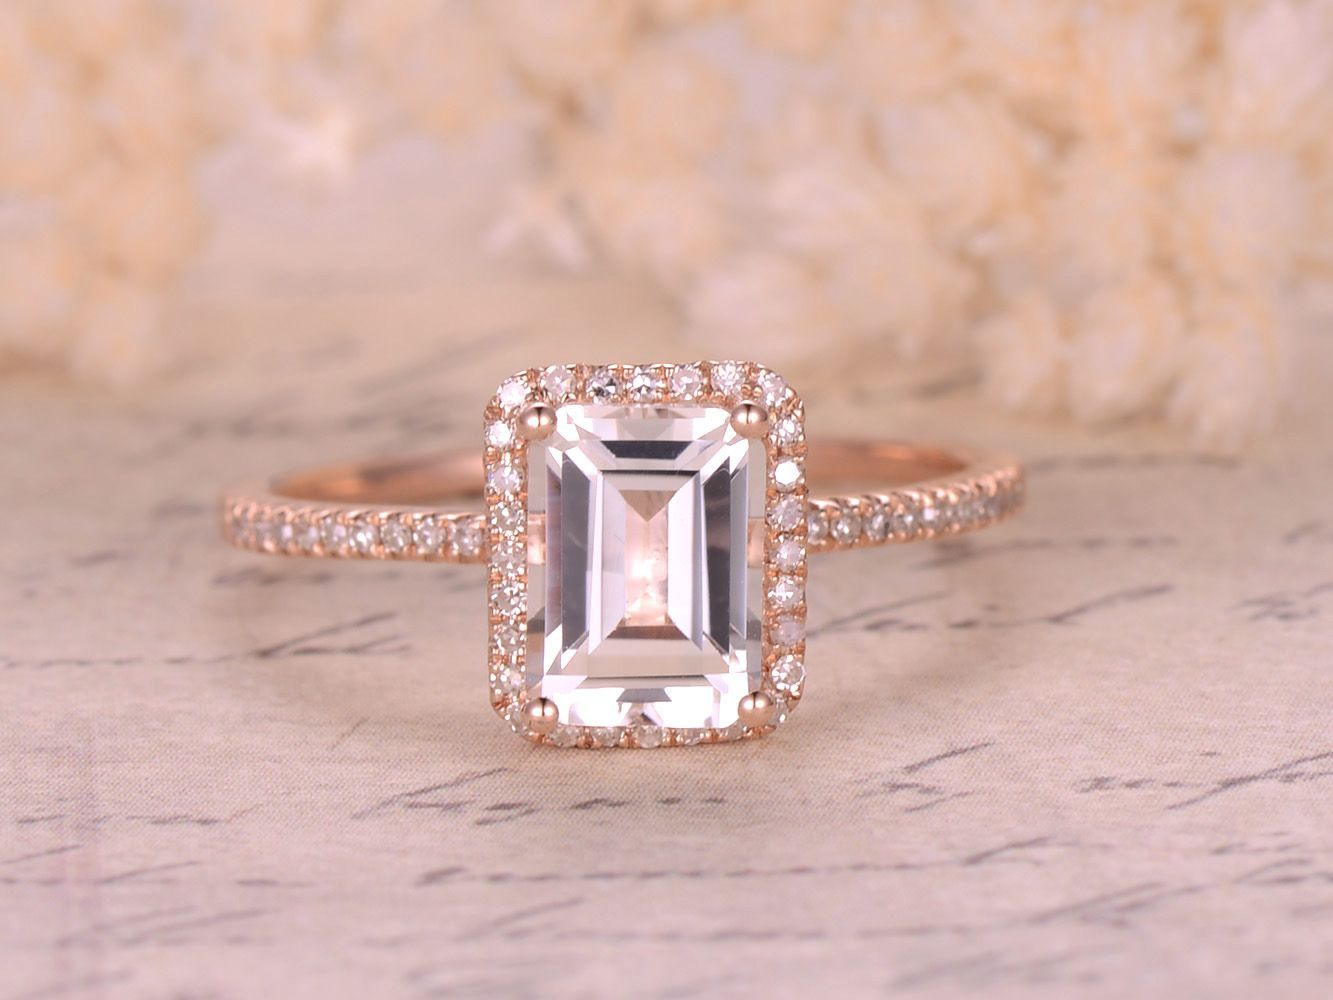 6x8mm Emerald Cut WHITE Topaz Engagement Ring,14K Rose Gold Diamonds ...